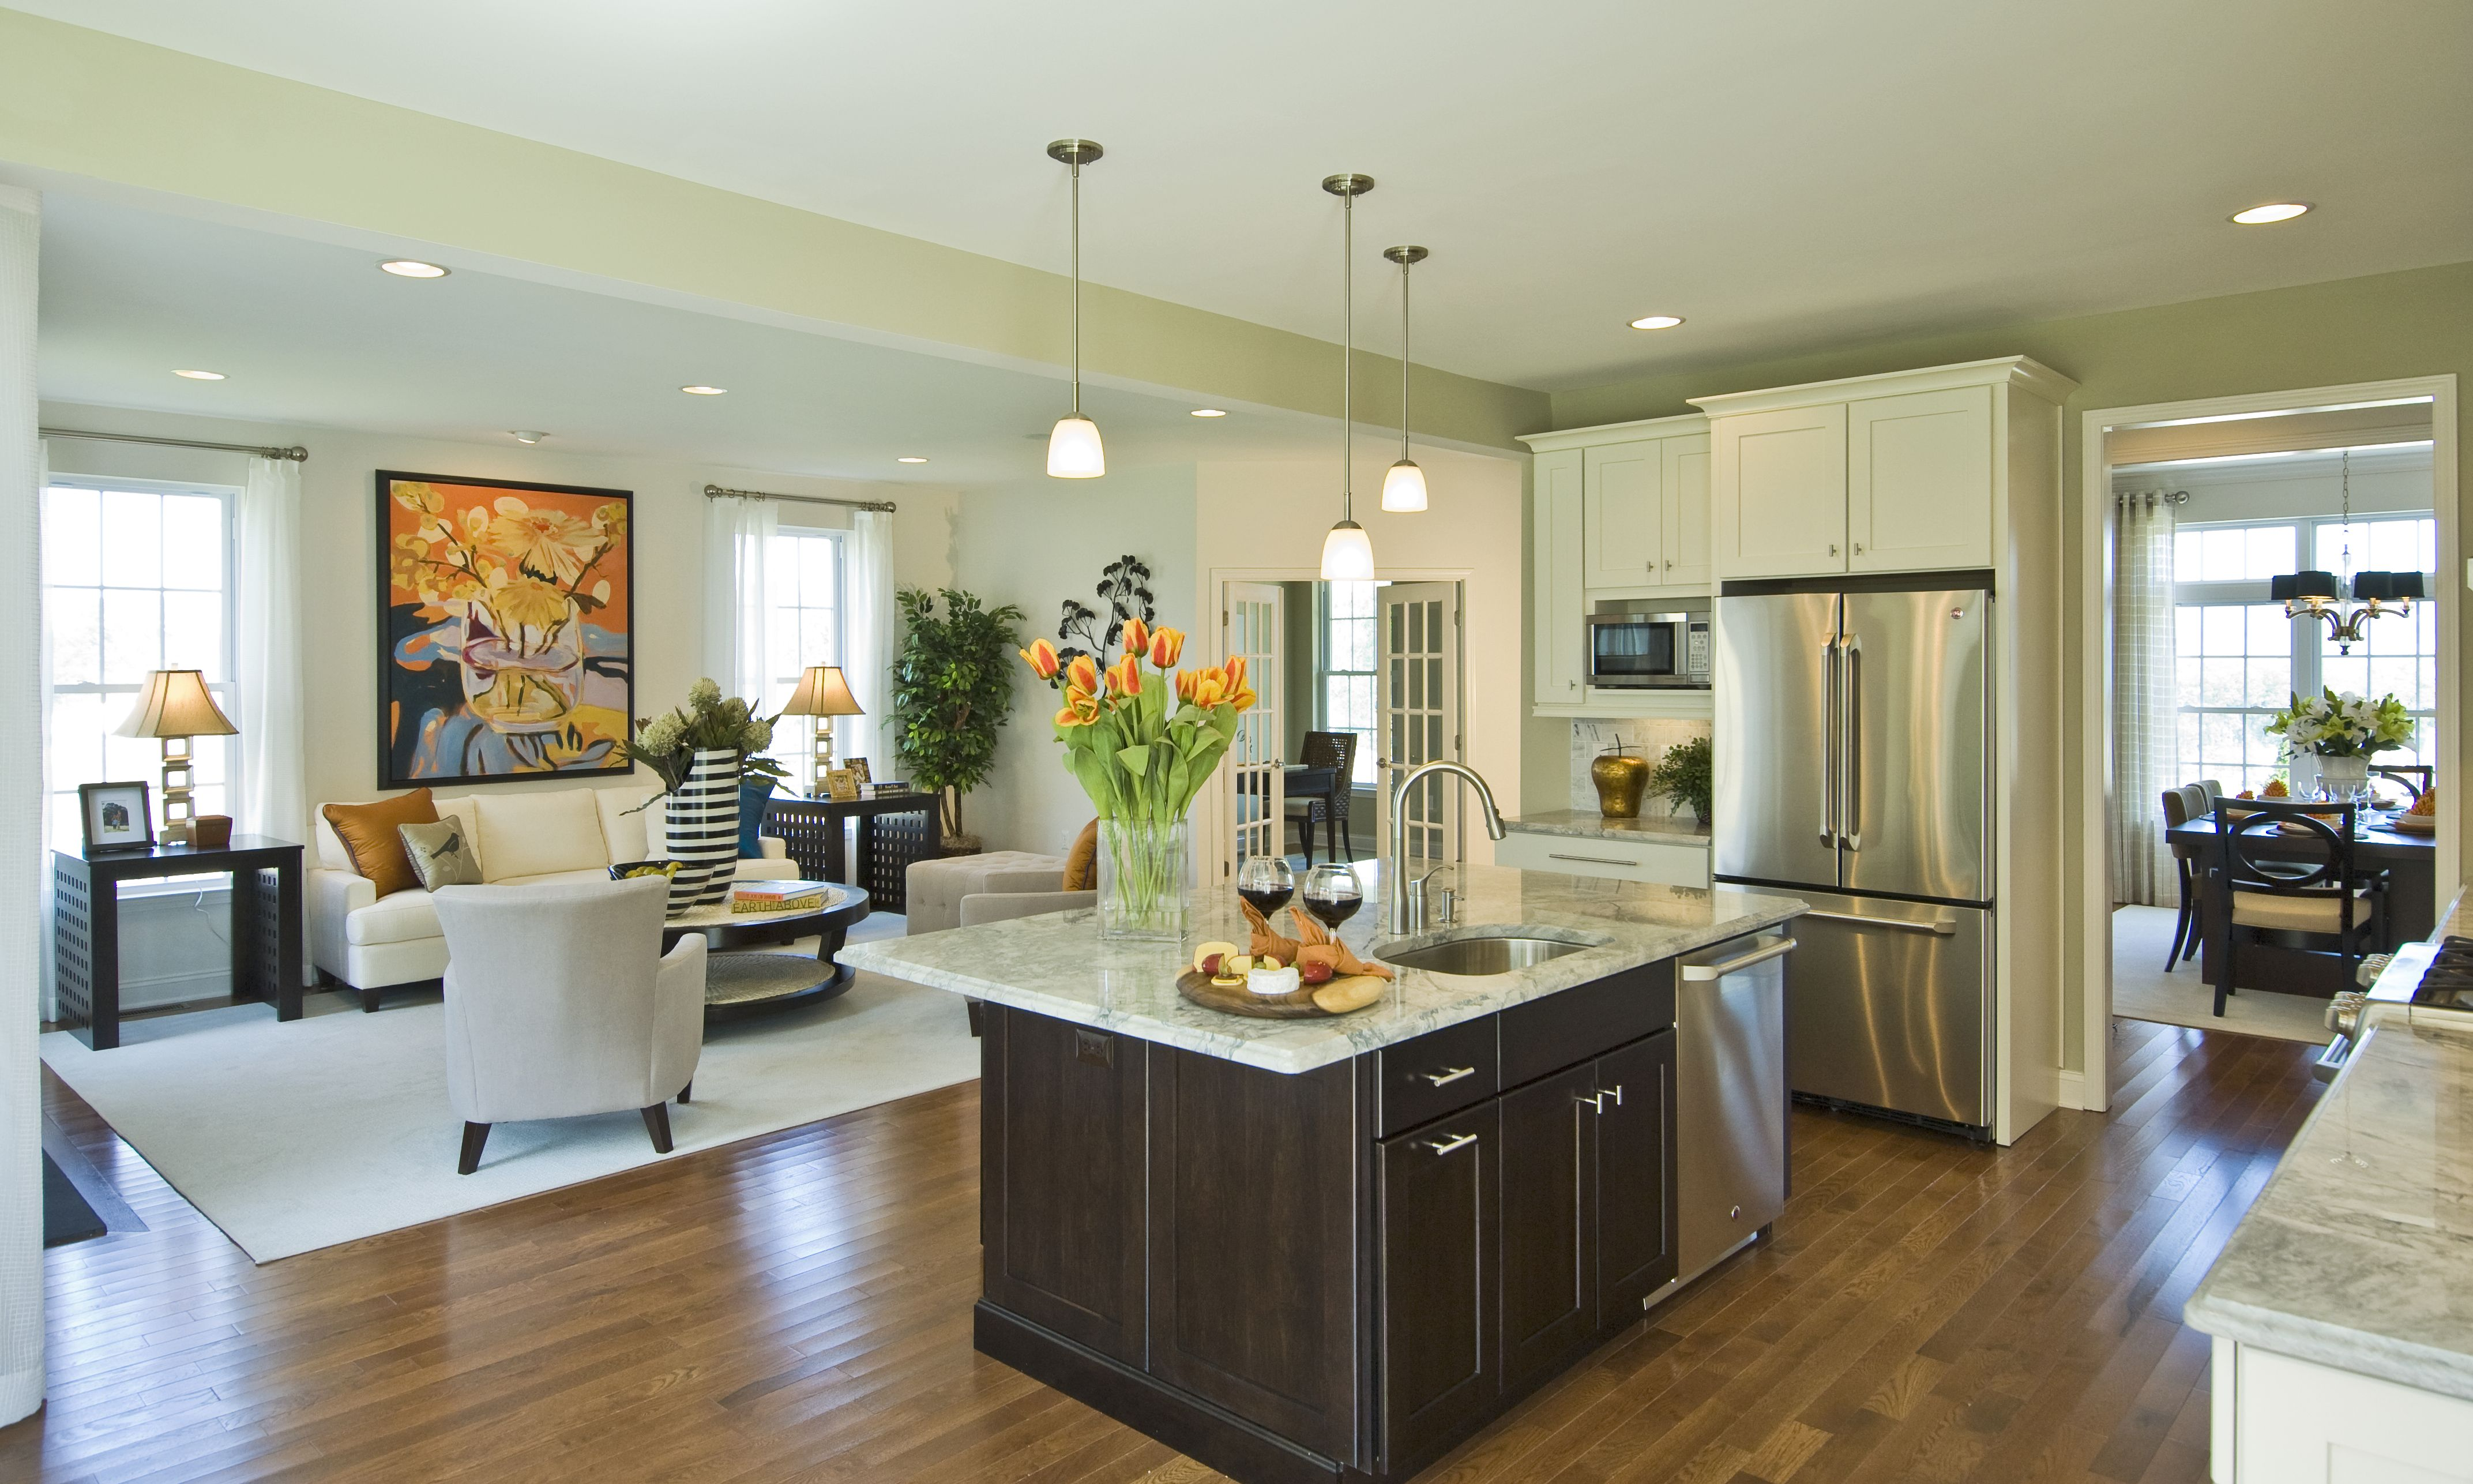 Highpointe at woodbury junction earns silver award for for Great kitchen design ideas